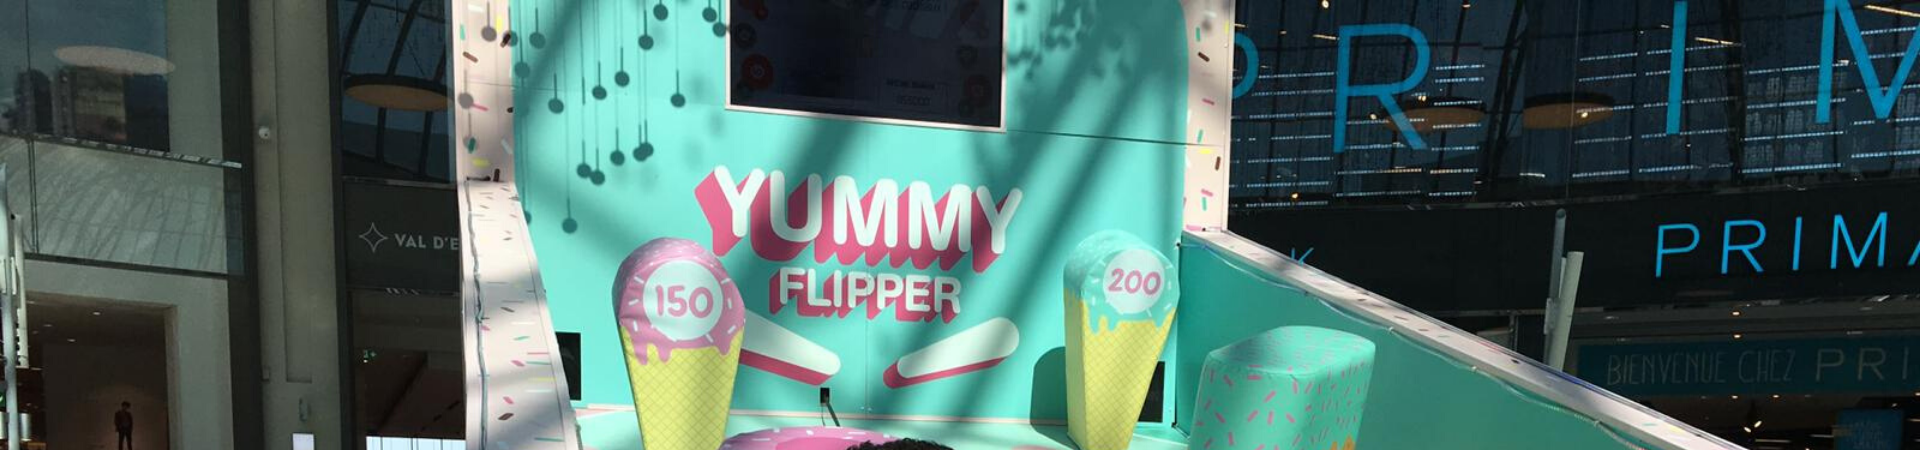 visuel VAL D'EUROPE – Yummy Flipper